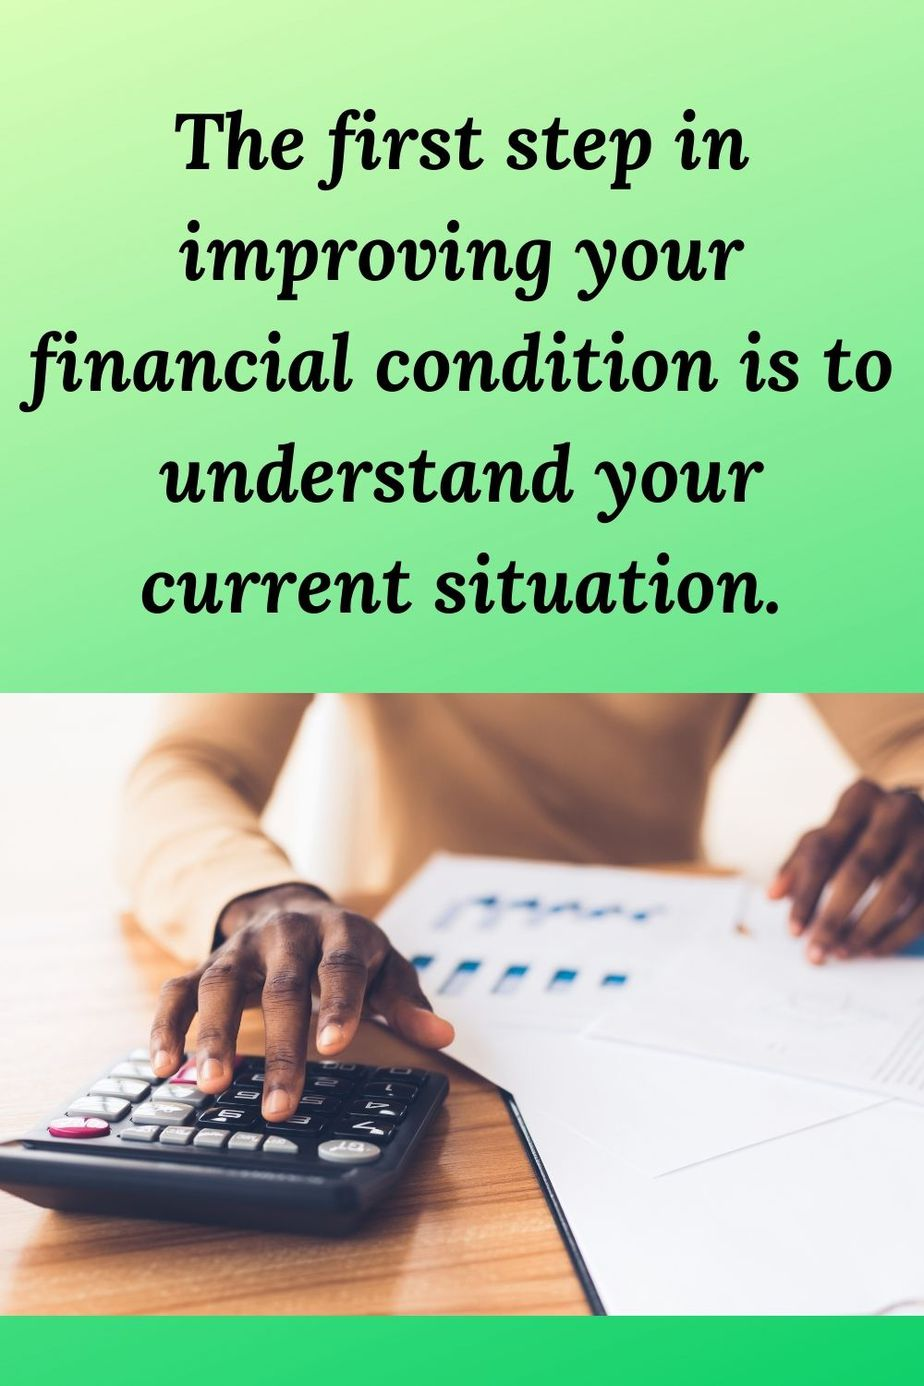 Control – Take Action Now to Control Your Finances